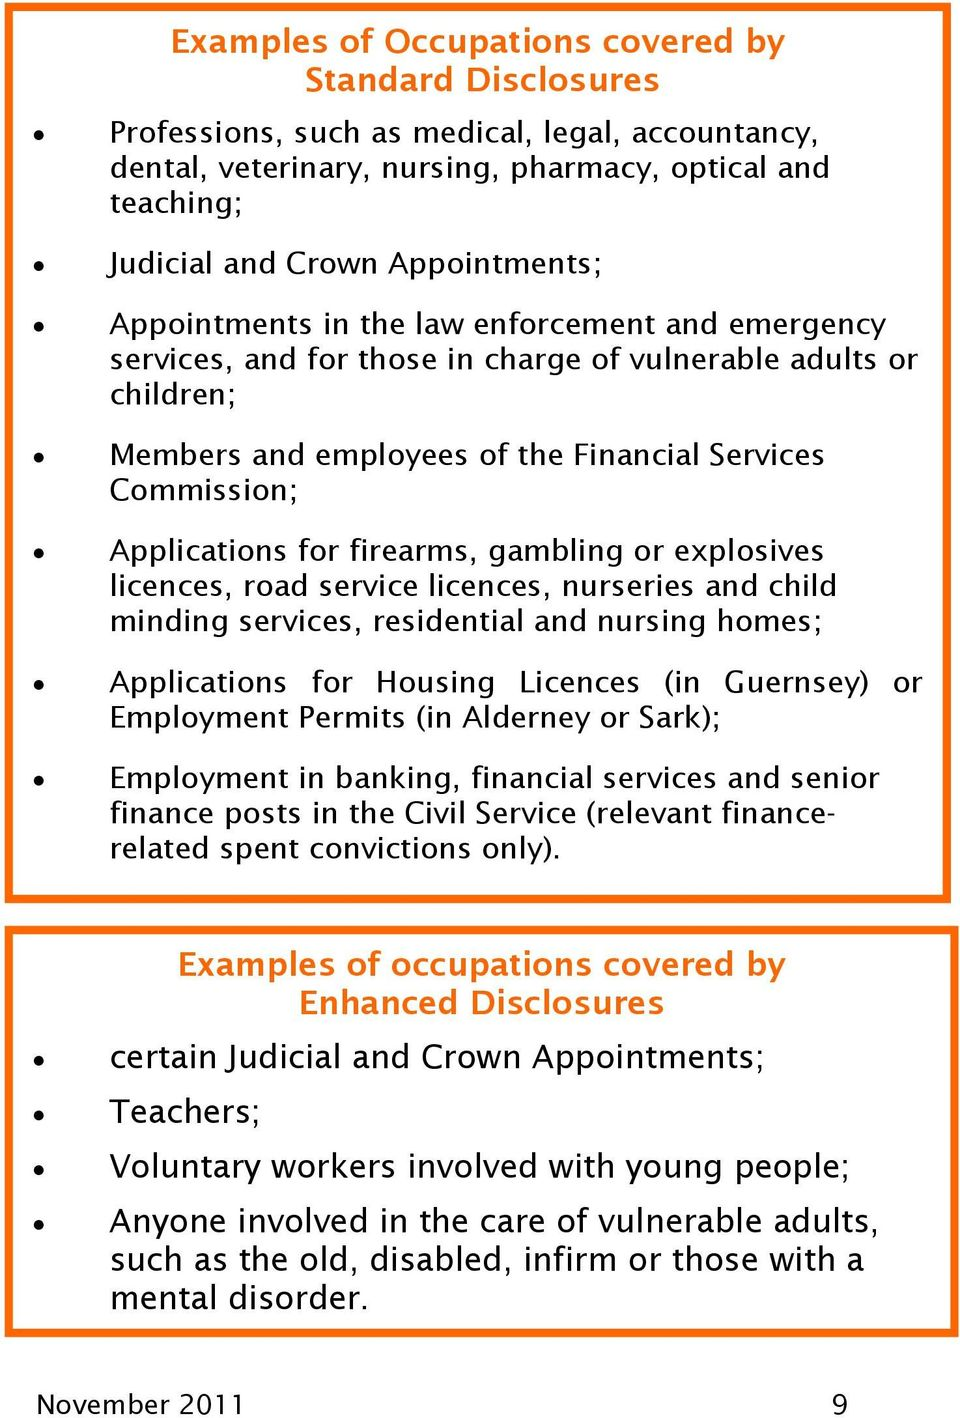 firearms, gambling or explosives licences, road service licences, nurseries and child minding services, residential and nursing homes; Applications for Housing Licences (in Guernsey) or Employment